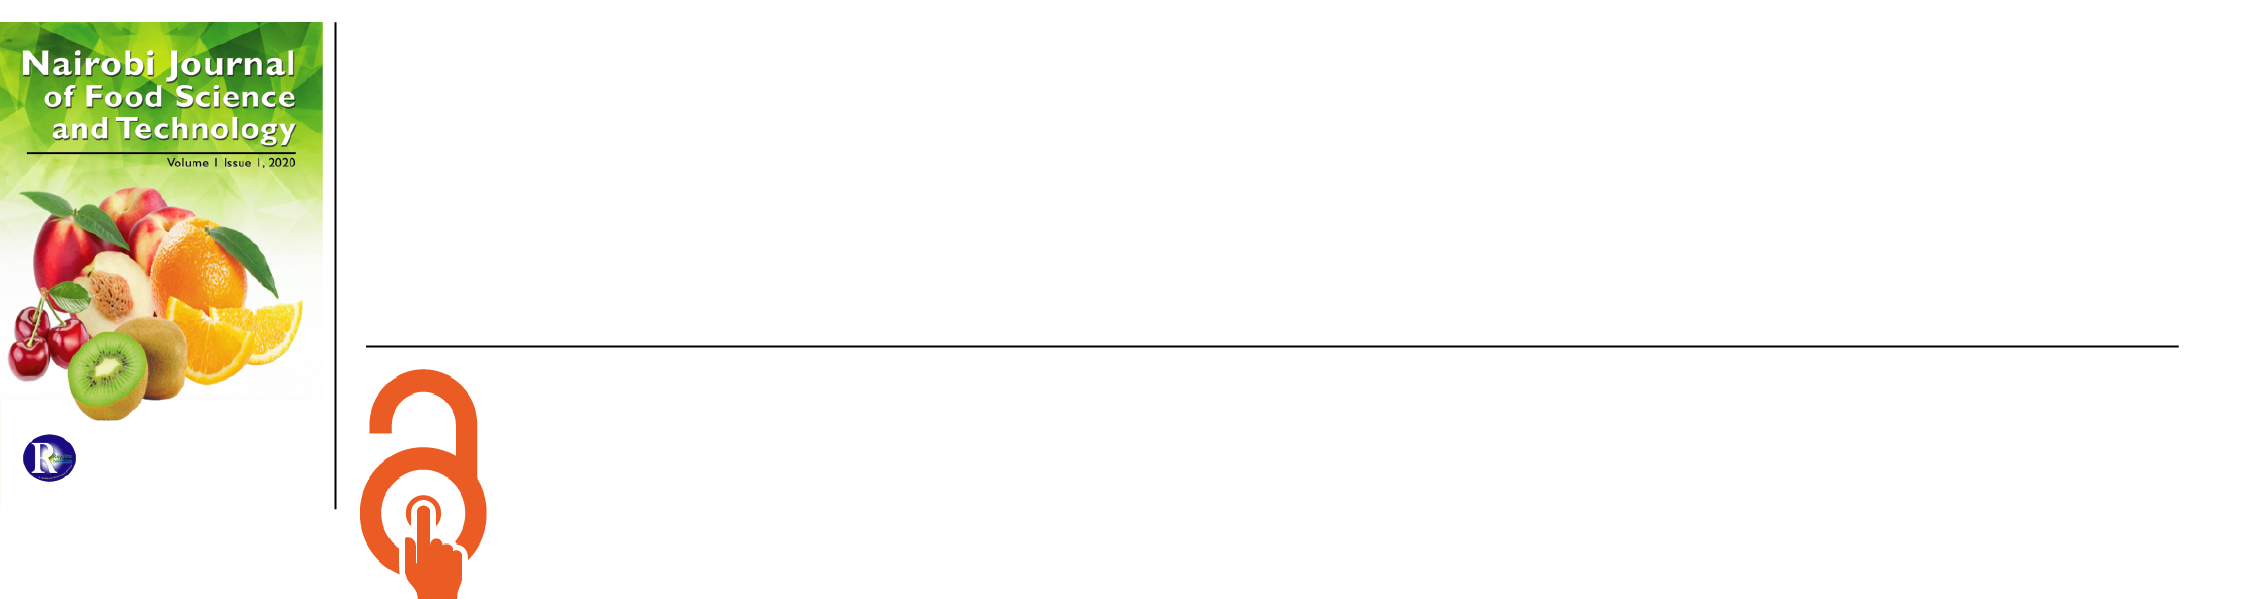 Nairobi Journal of Food Science and Technology